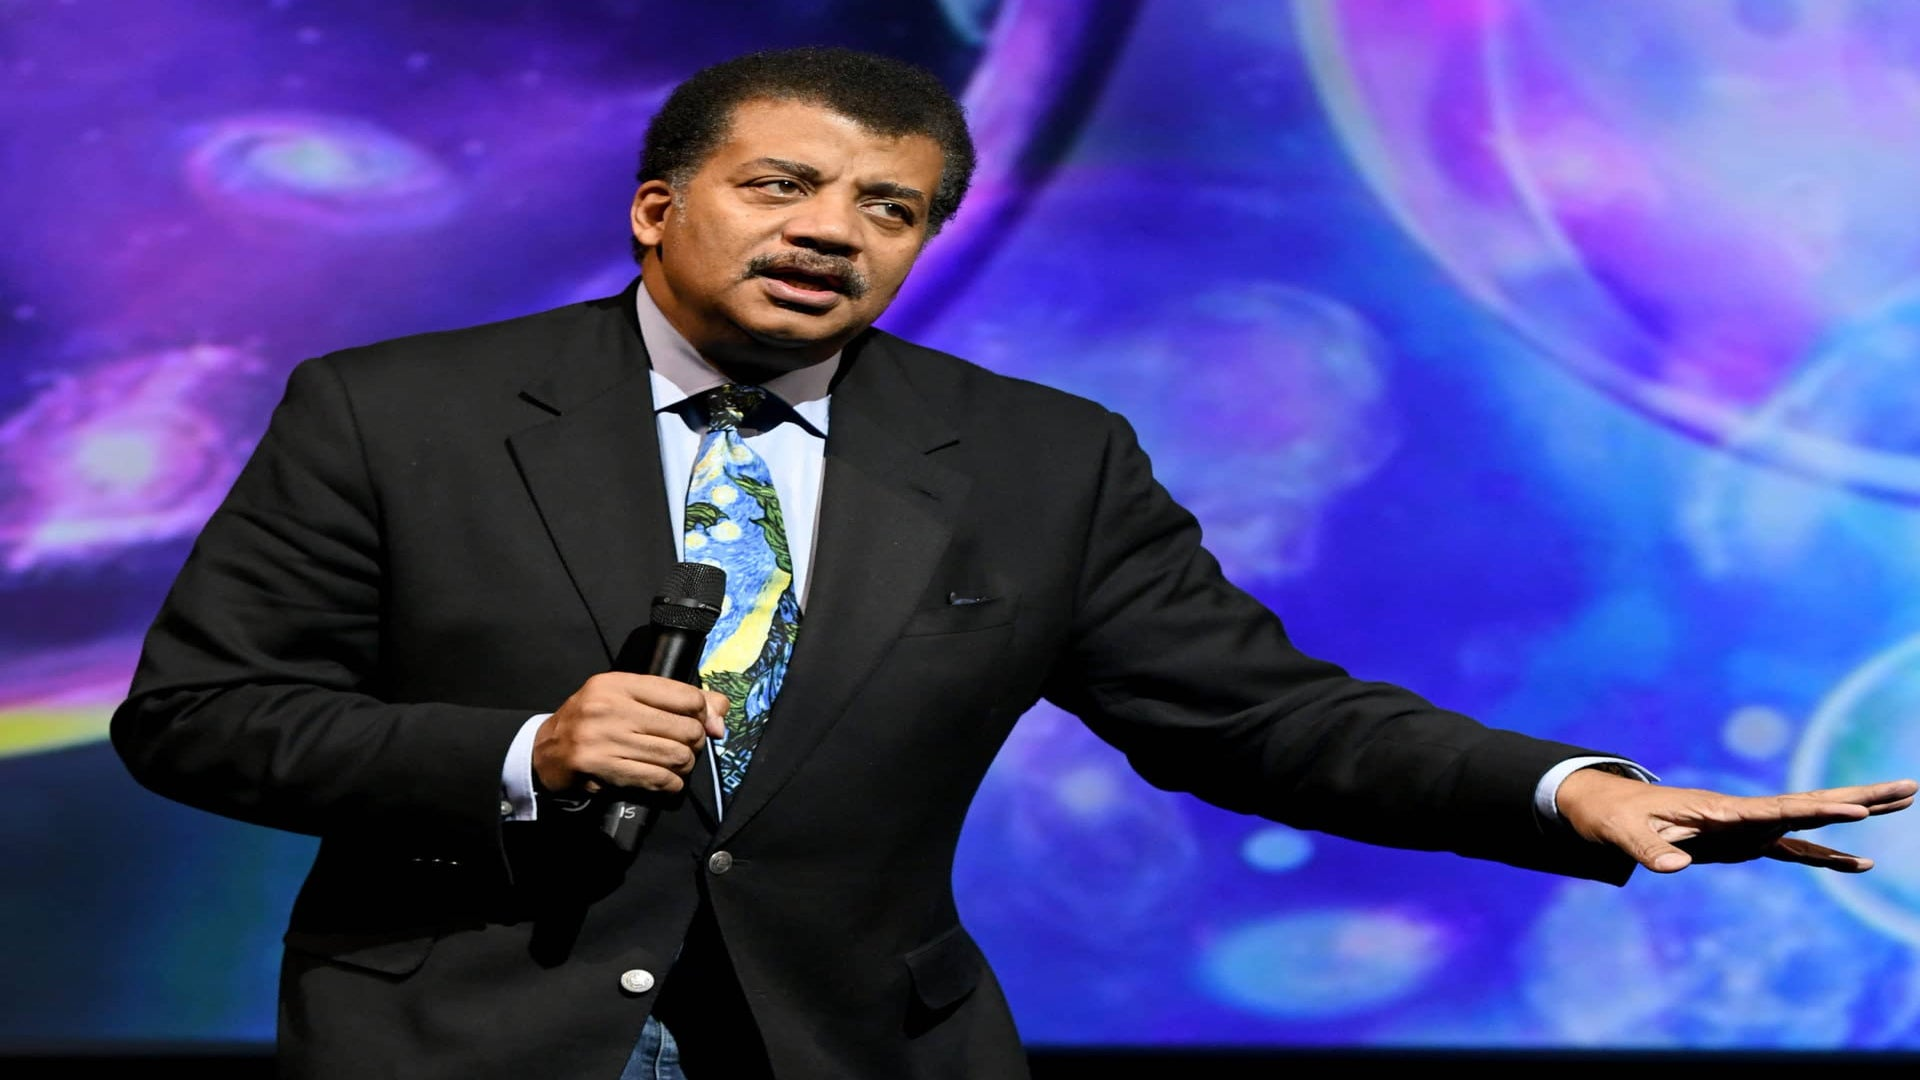 4th Woman Accuses Neil deGrasse Tyson Of Sexual Misconduct